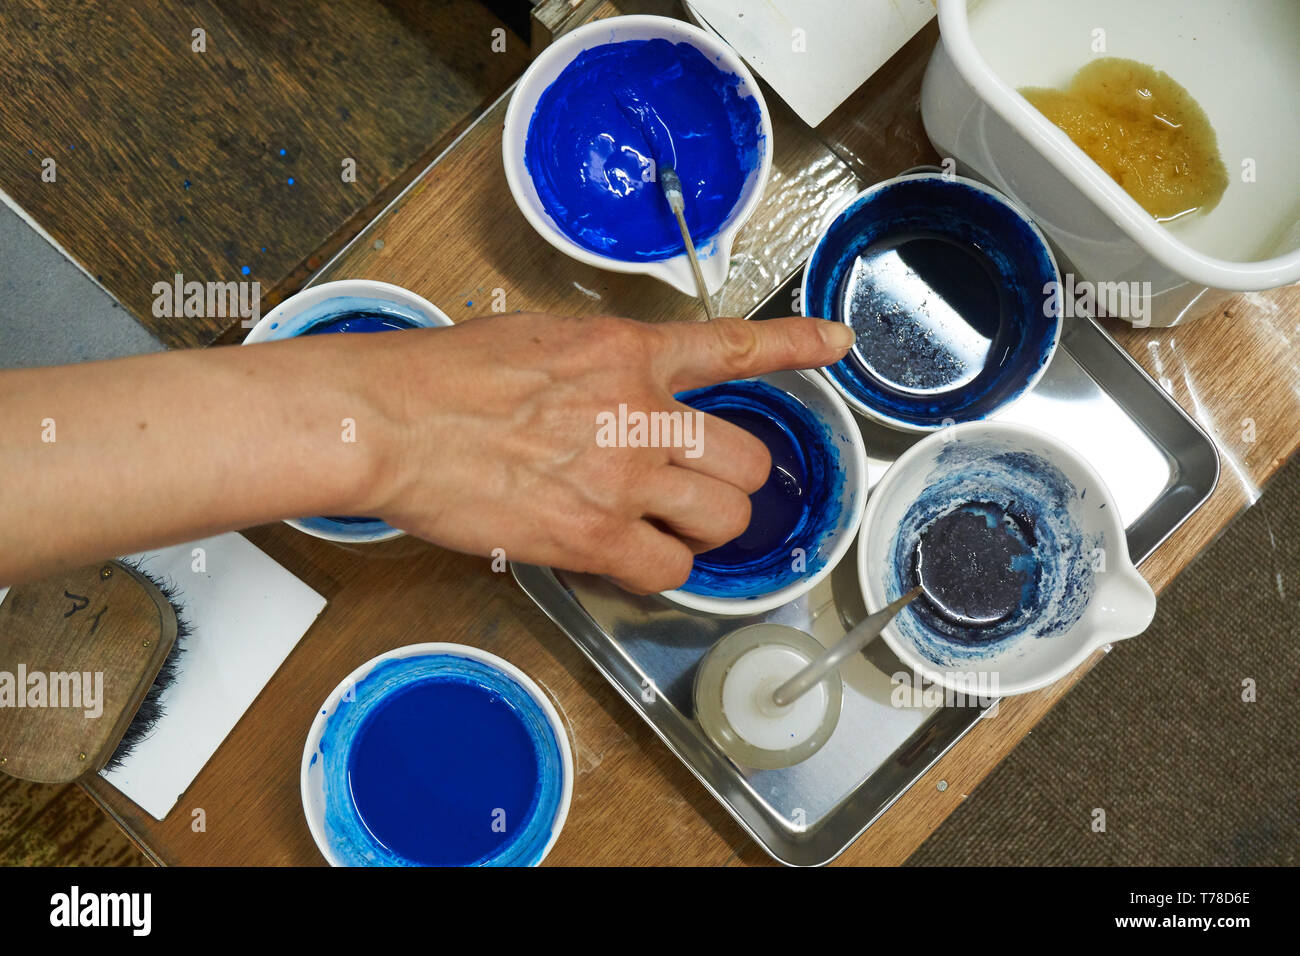 A Japanese woman woodblock printmaker points at her blue pigments arranged in cups with brushes on a table with other tools surrounding them. - Stock Image